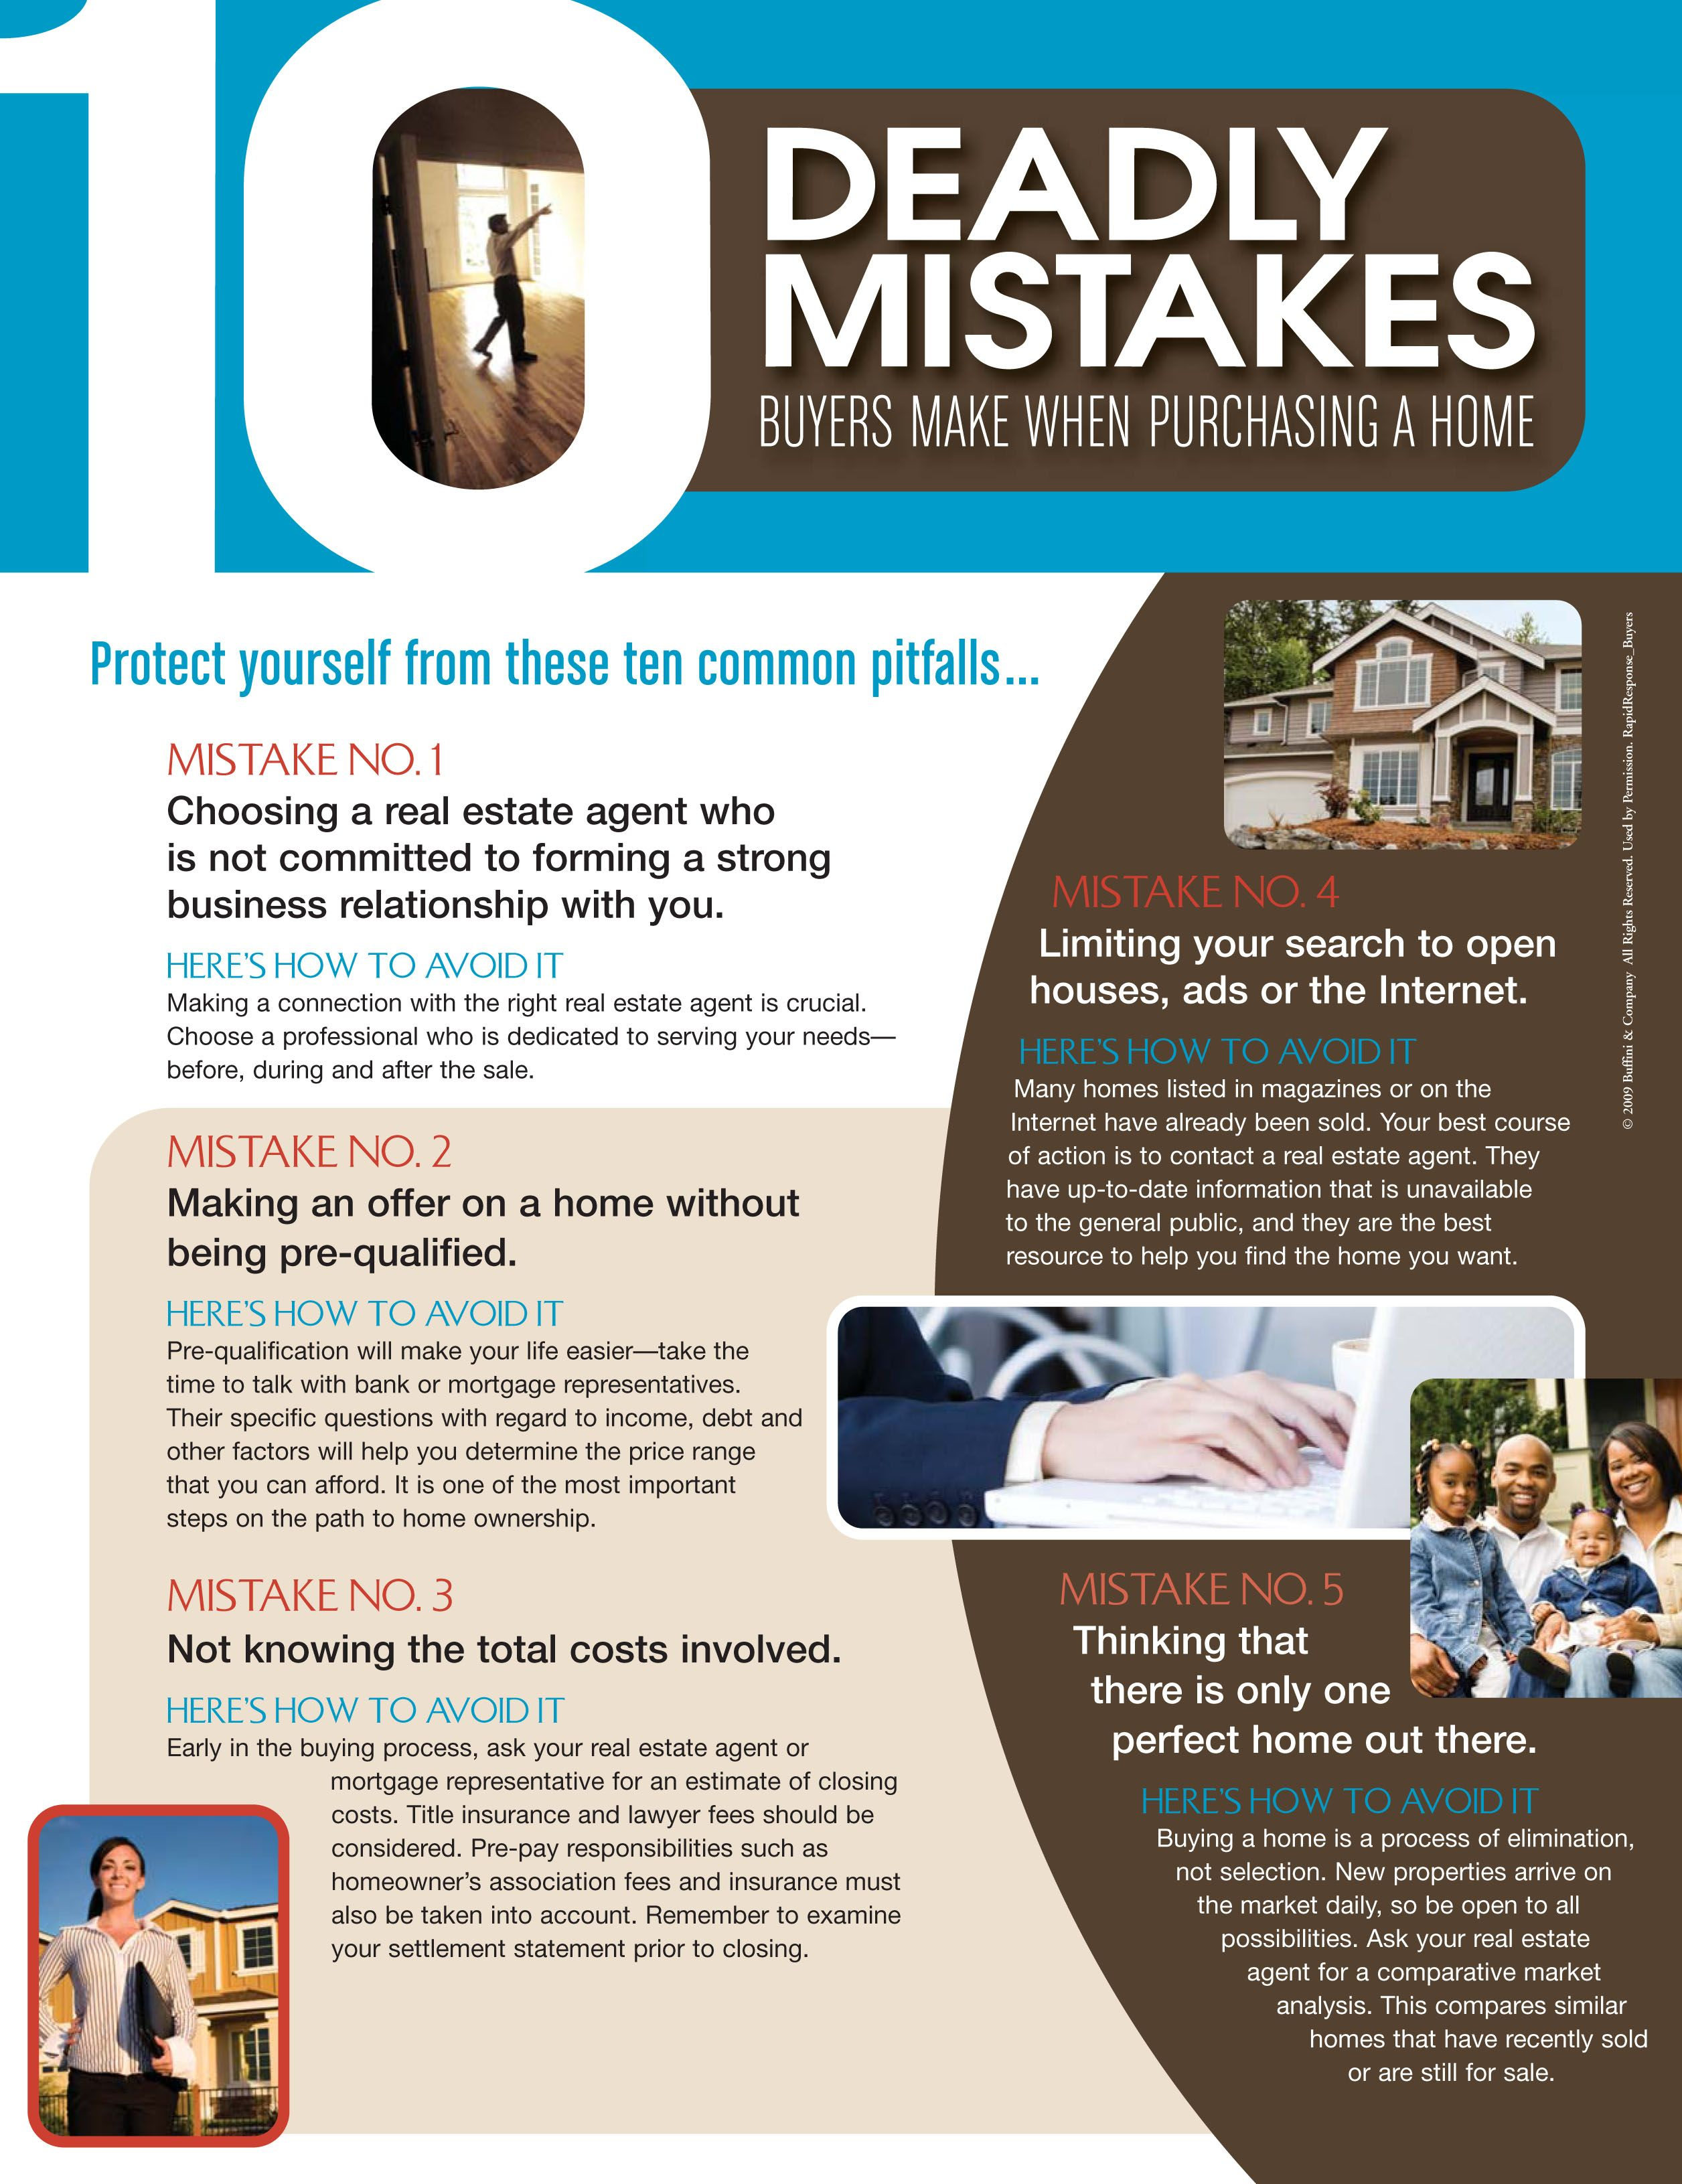 10 Deadly Mistakes Buyers Make When Purchasing A Home Catherine Moody Realty Executives 865 599 8780 Or 865 Home Buying Tips Real Estate Tips Home Ownership